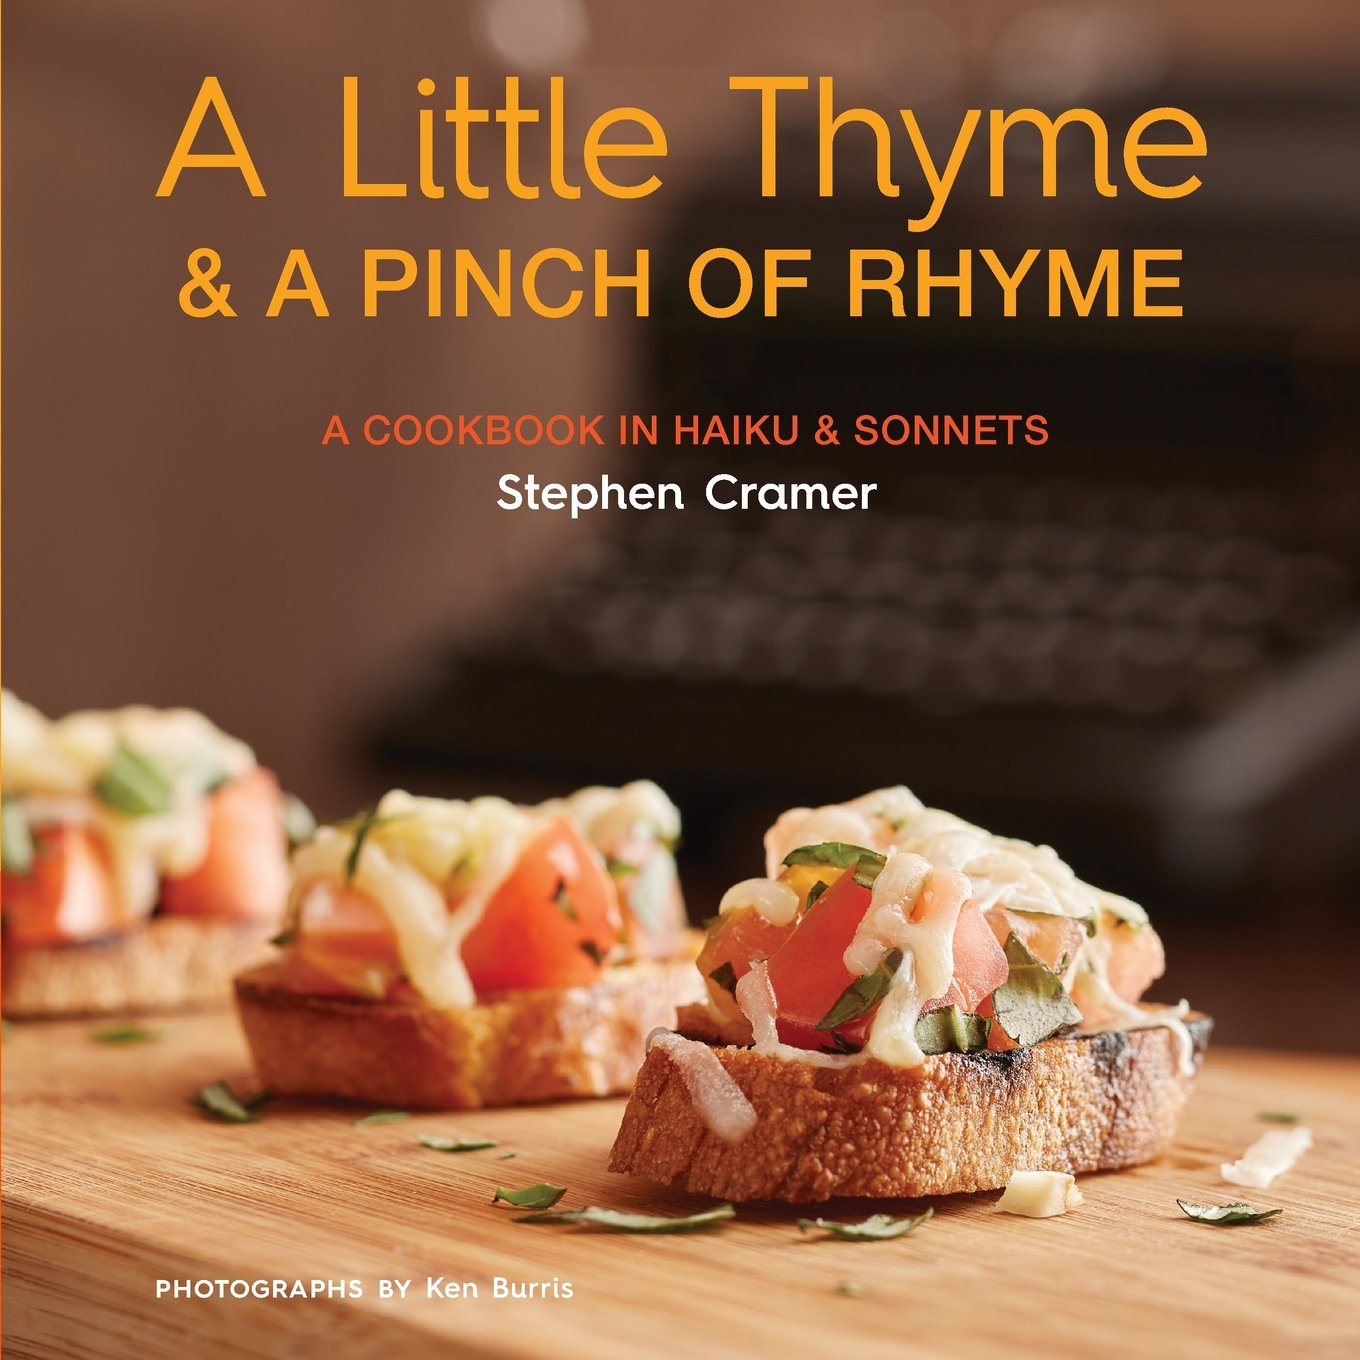 cover of A Little Thyme & A Pinch of Rhyme (A Cookbook in Haiku & Sonnets) by Stephen Cramer